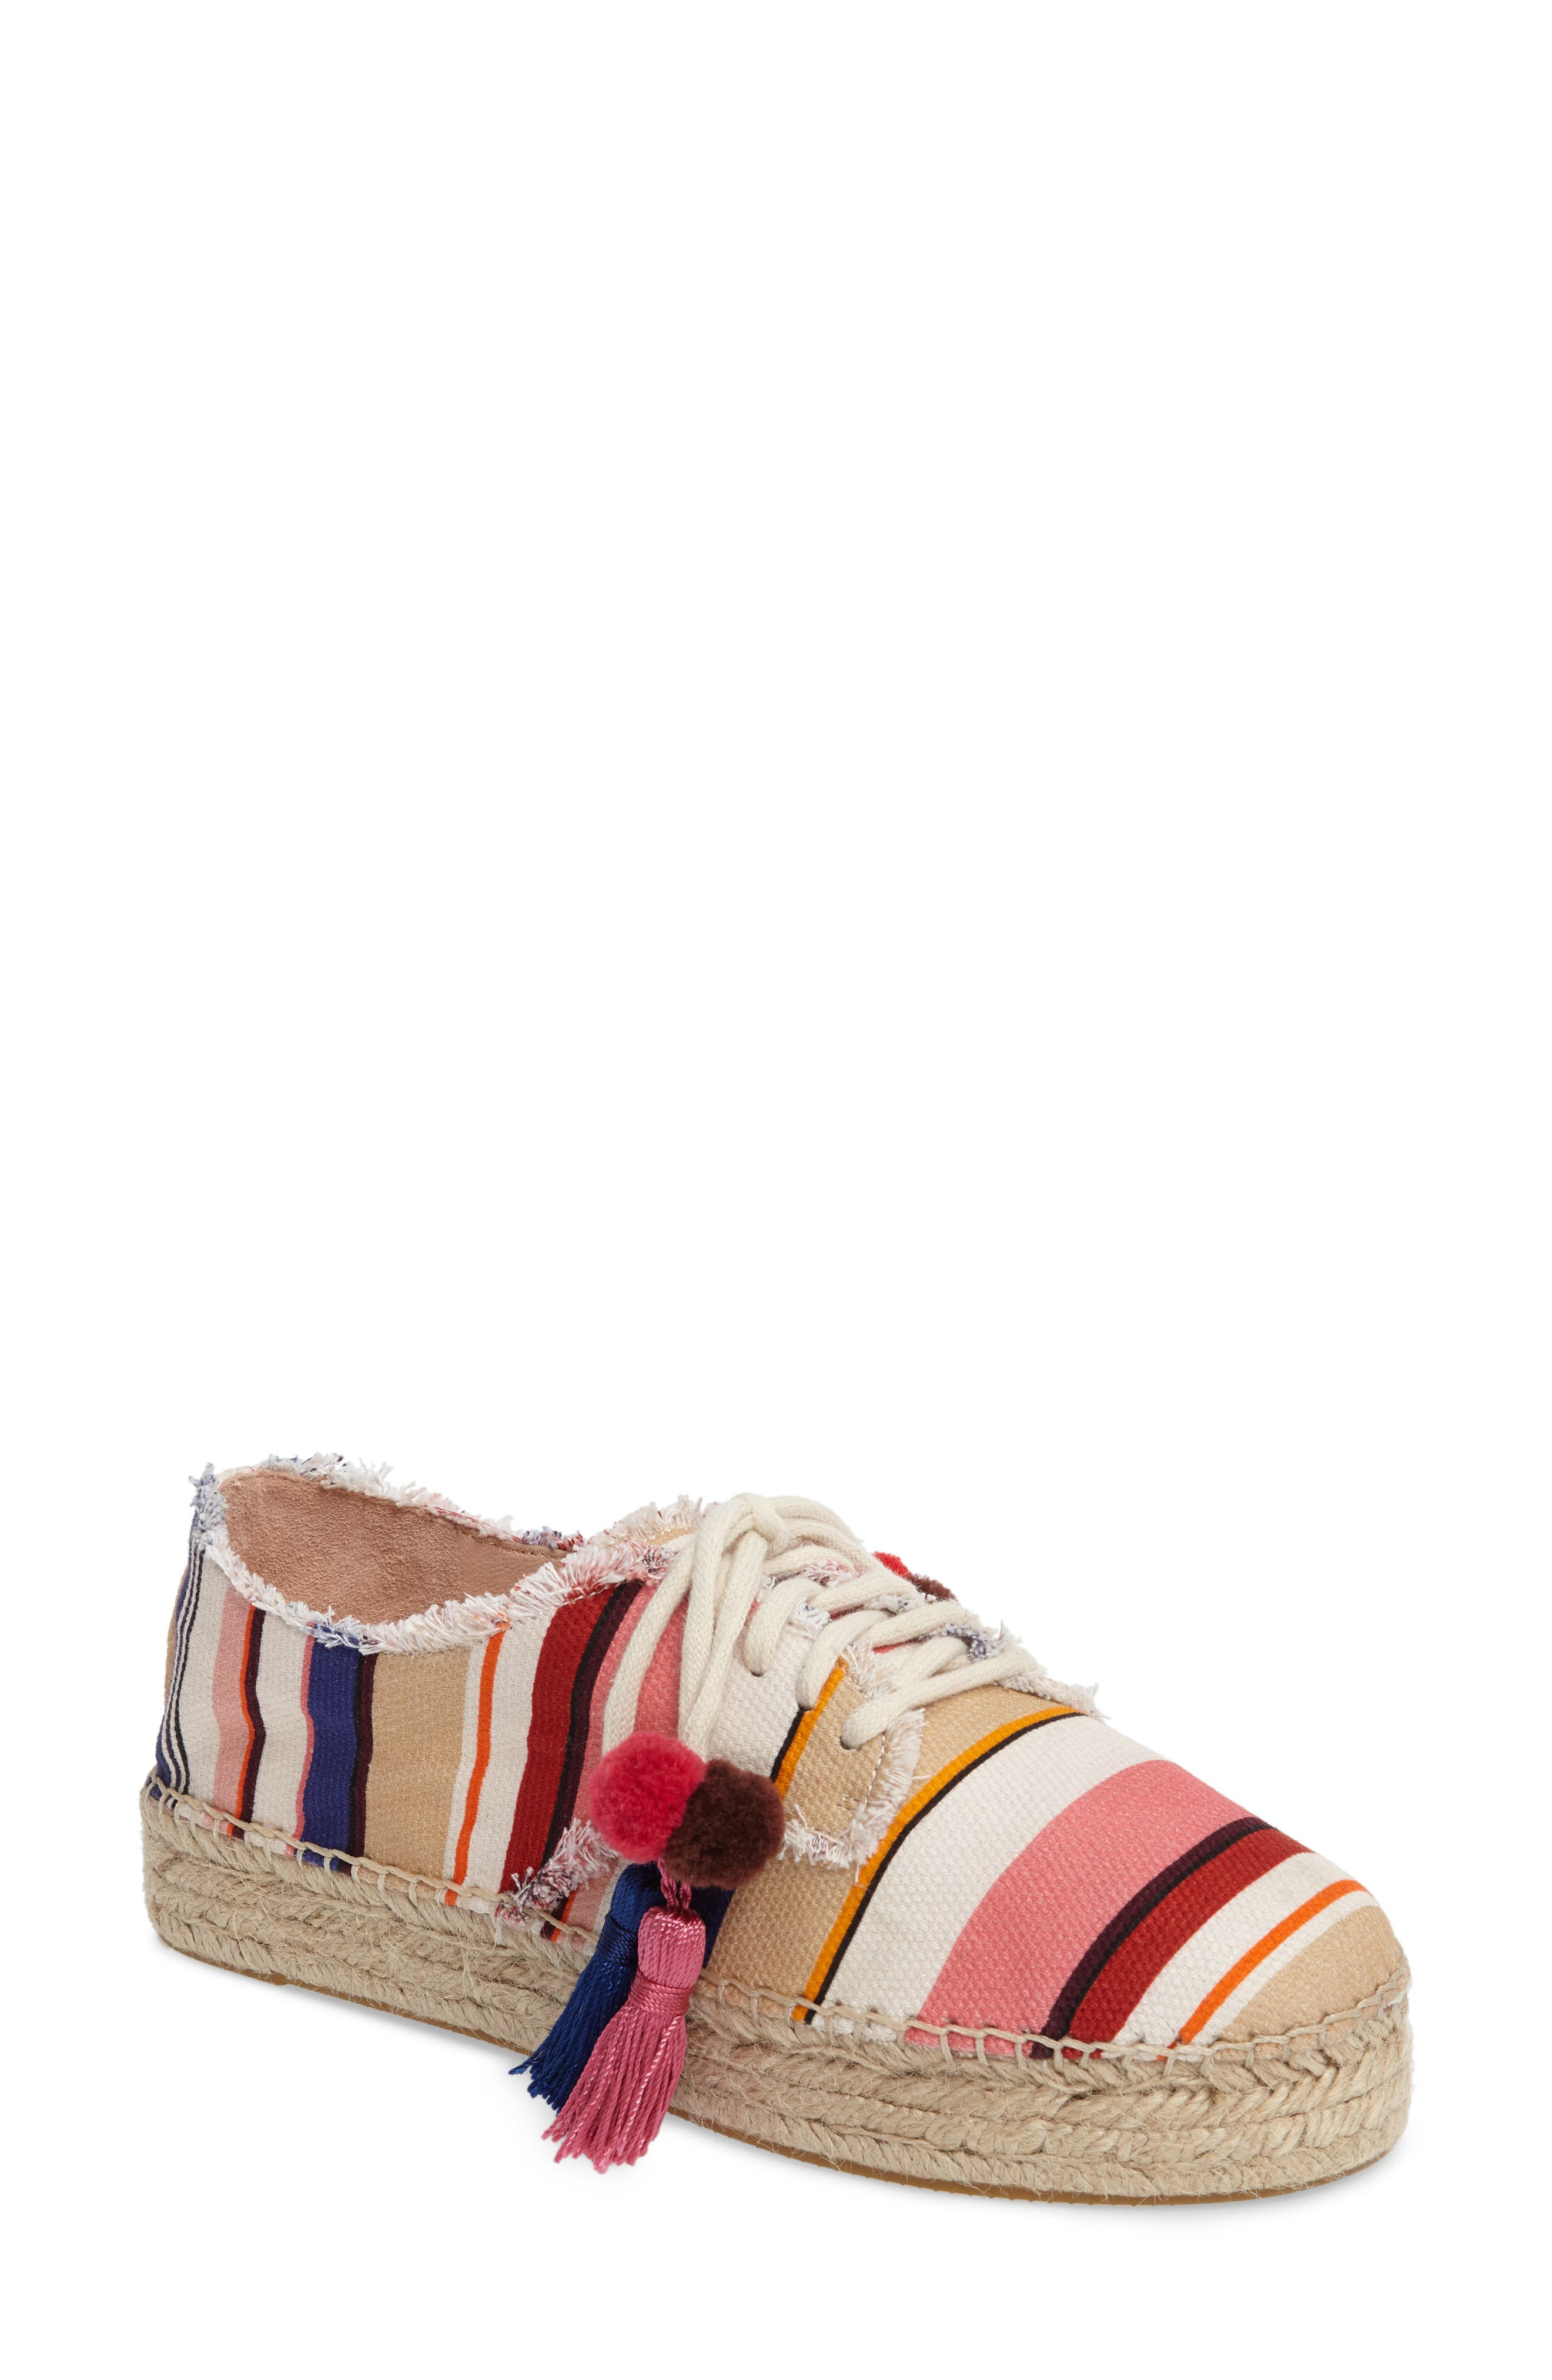 Main Image - kate spade new york lane espadrille platform sneaker (Women)